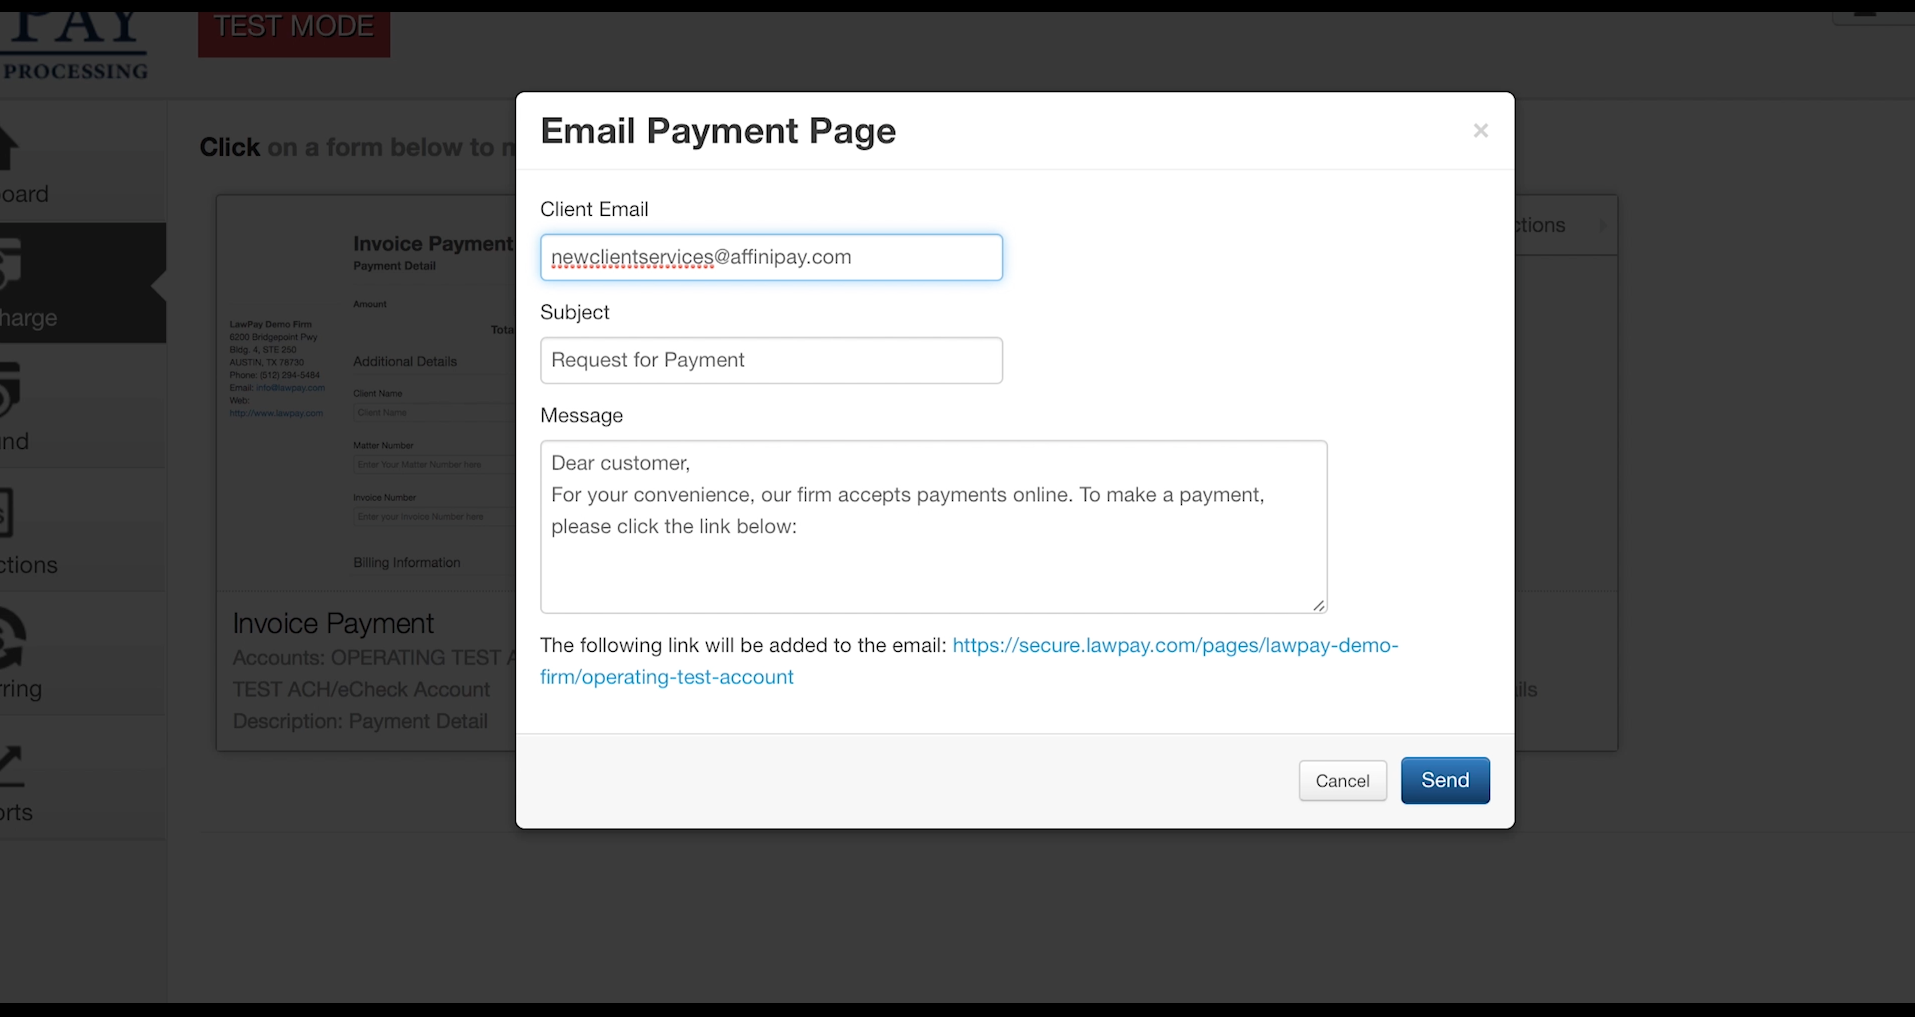 Email a Payment Page Link